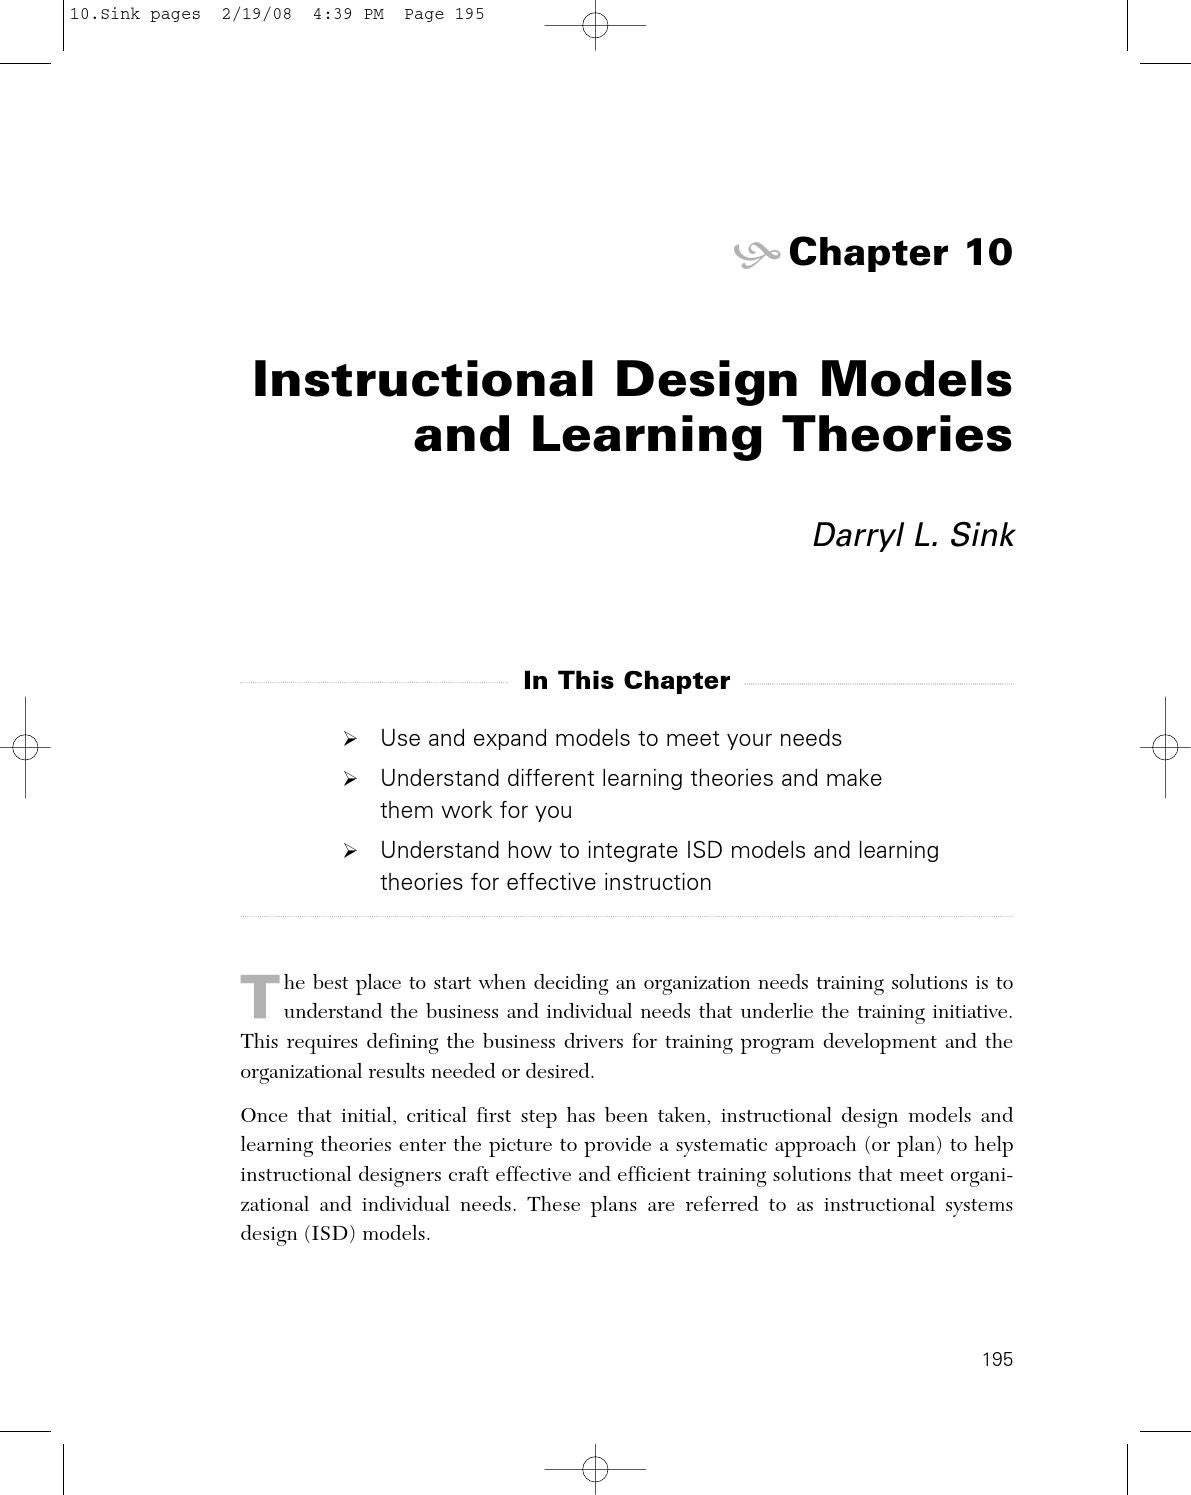 instructional design theories and models